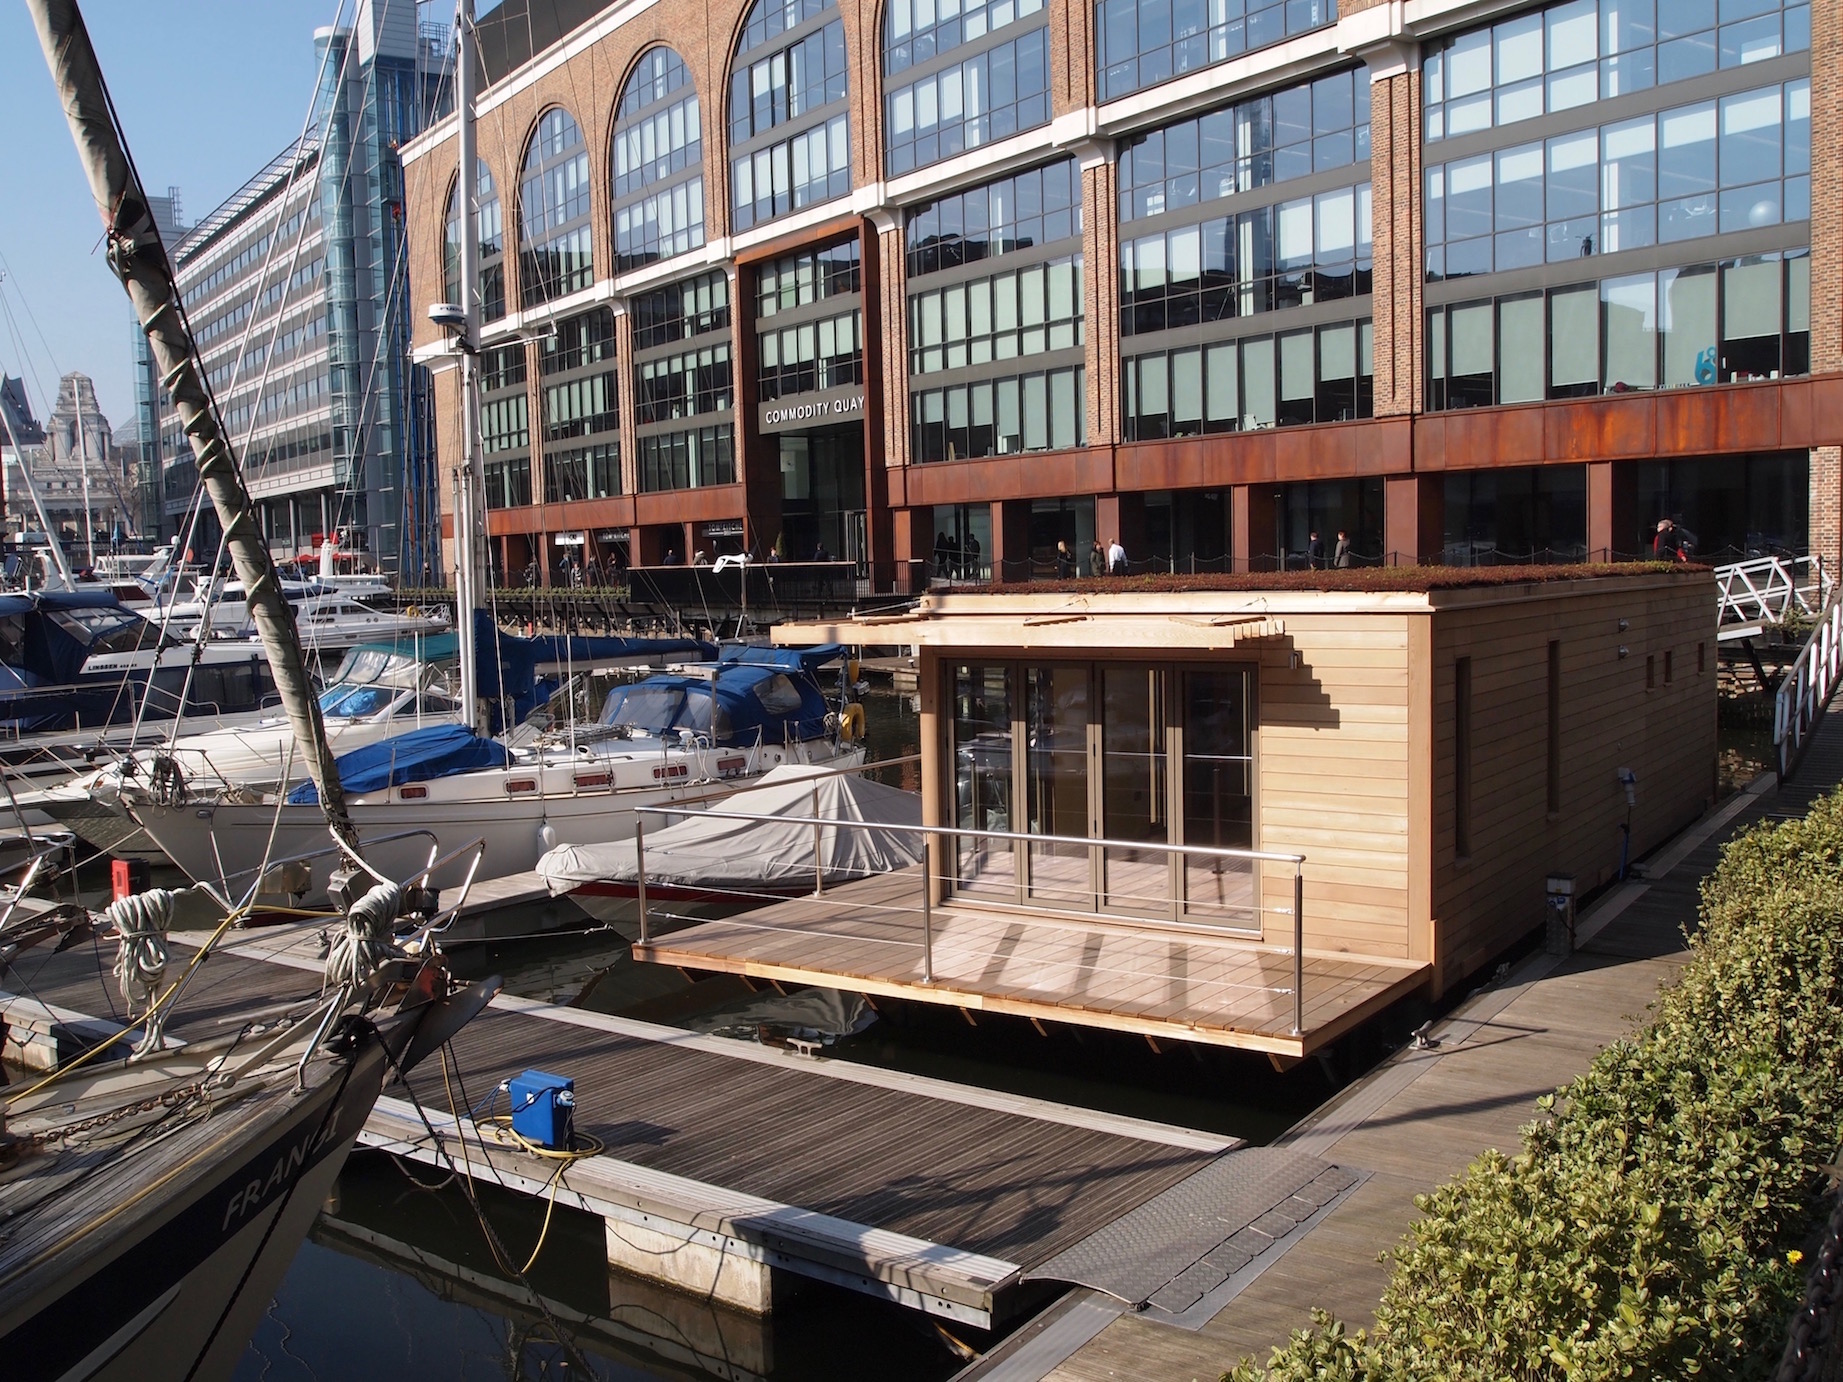 Eco Floating Home Commodity Quay, St Katharine Docks